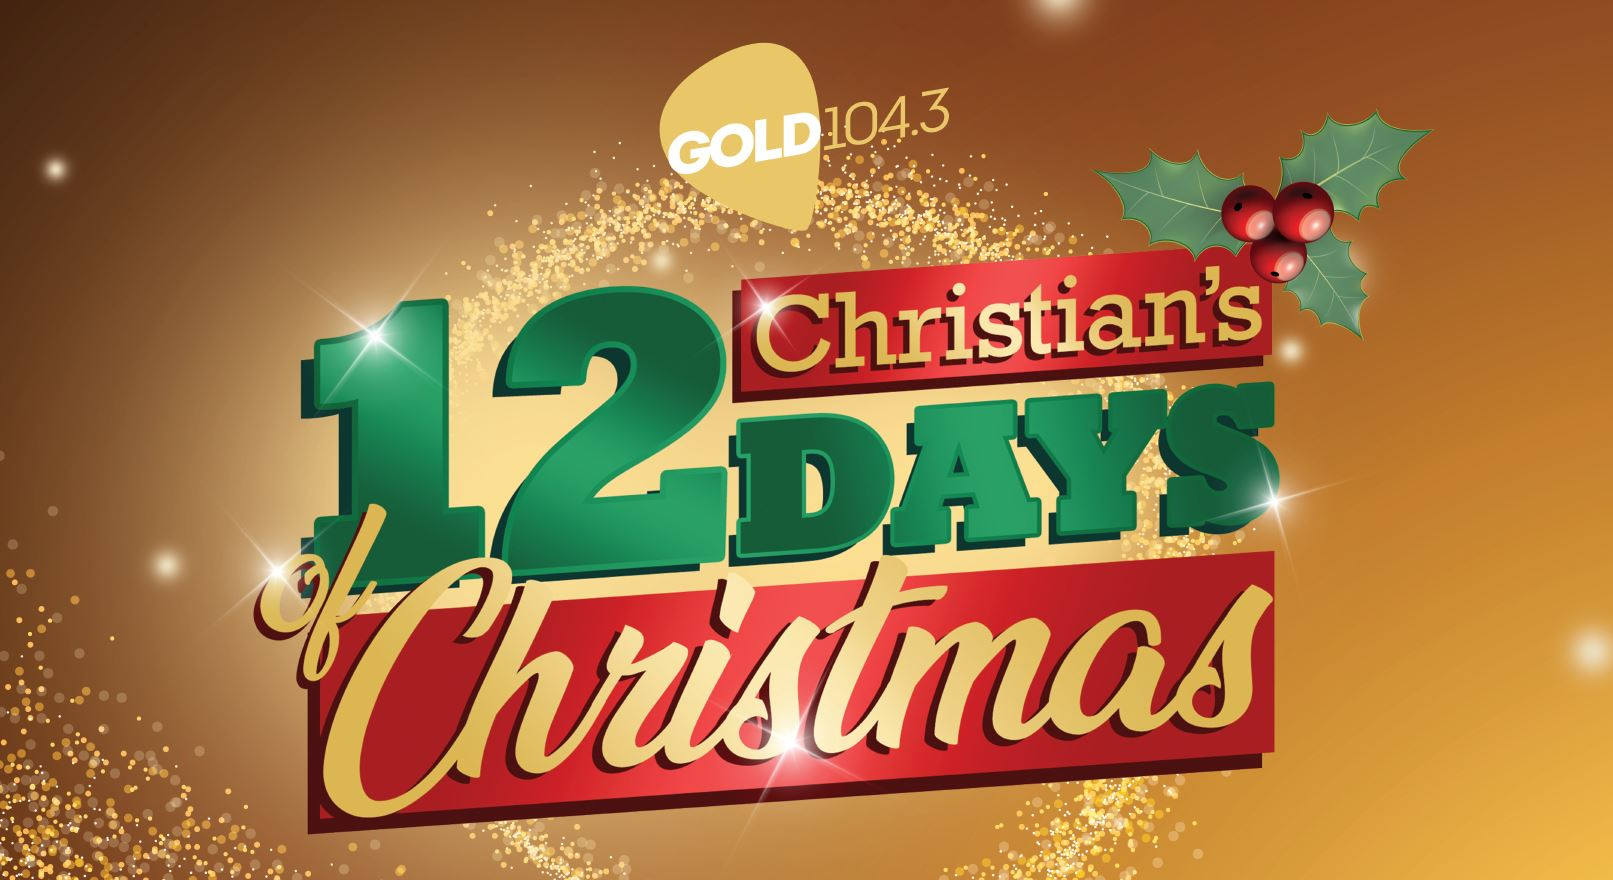 GOLD104.3 12 DAYS OF CHRISTMAS